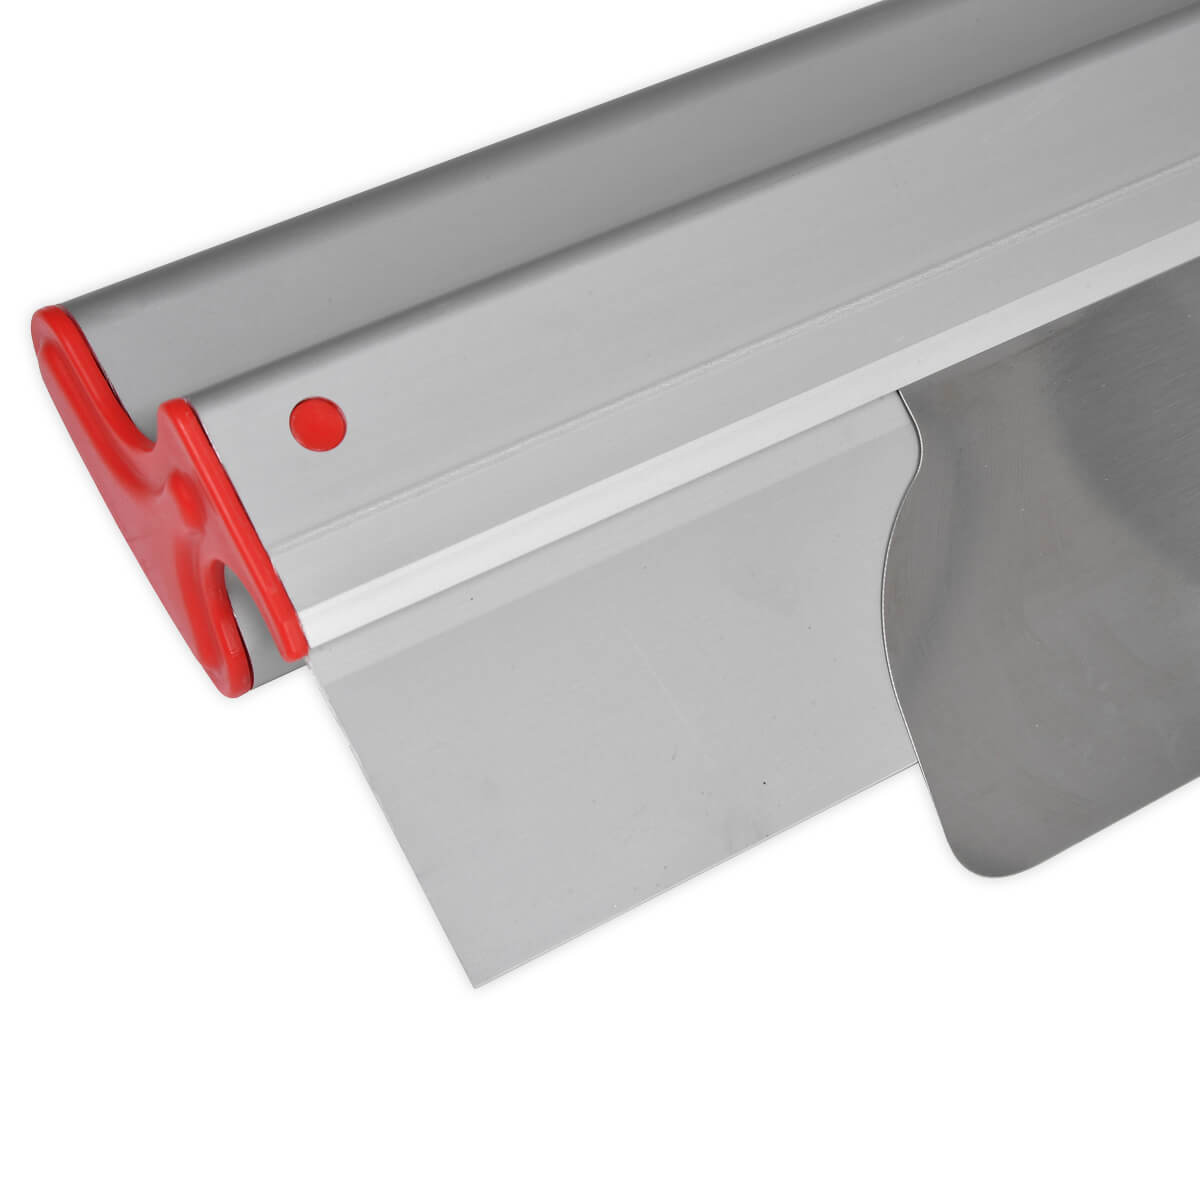 You can replace the 0.33mm precision stainless steel blade inserts in your LEVEL5 24-inch drywall finishing blades.